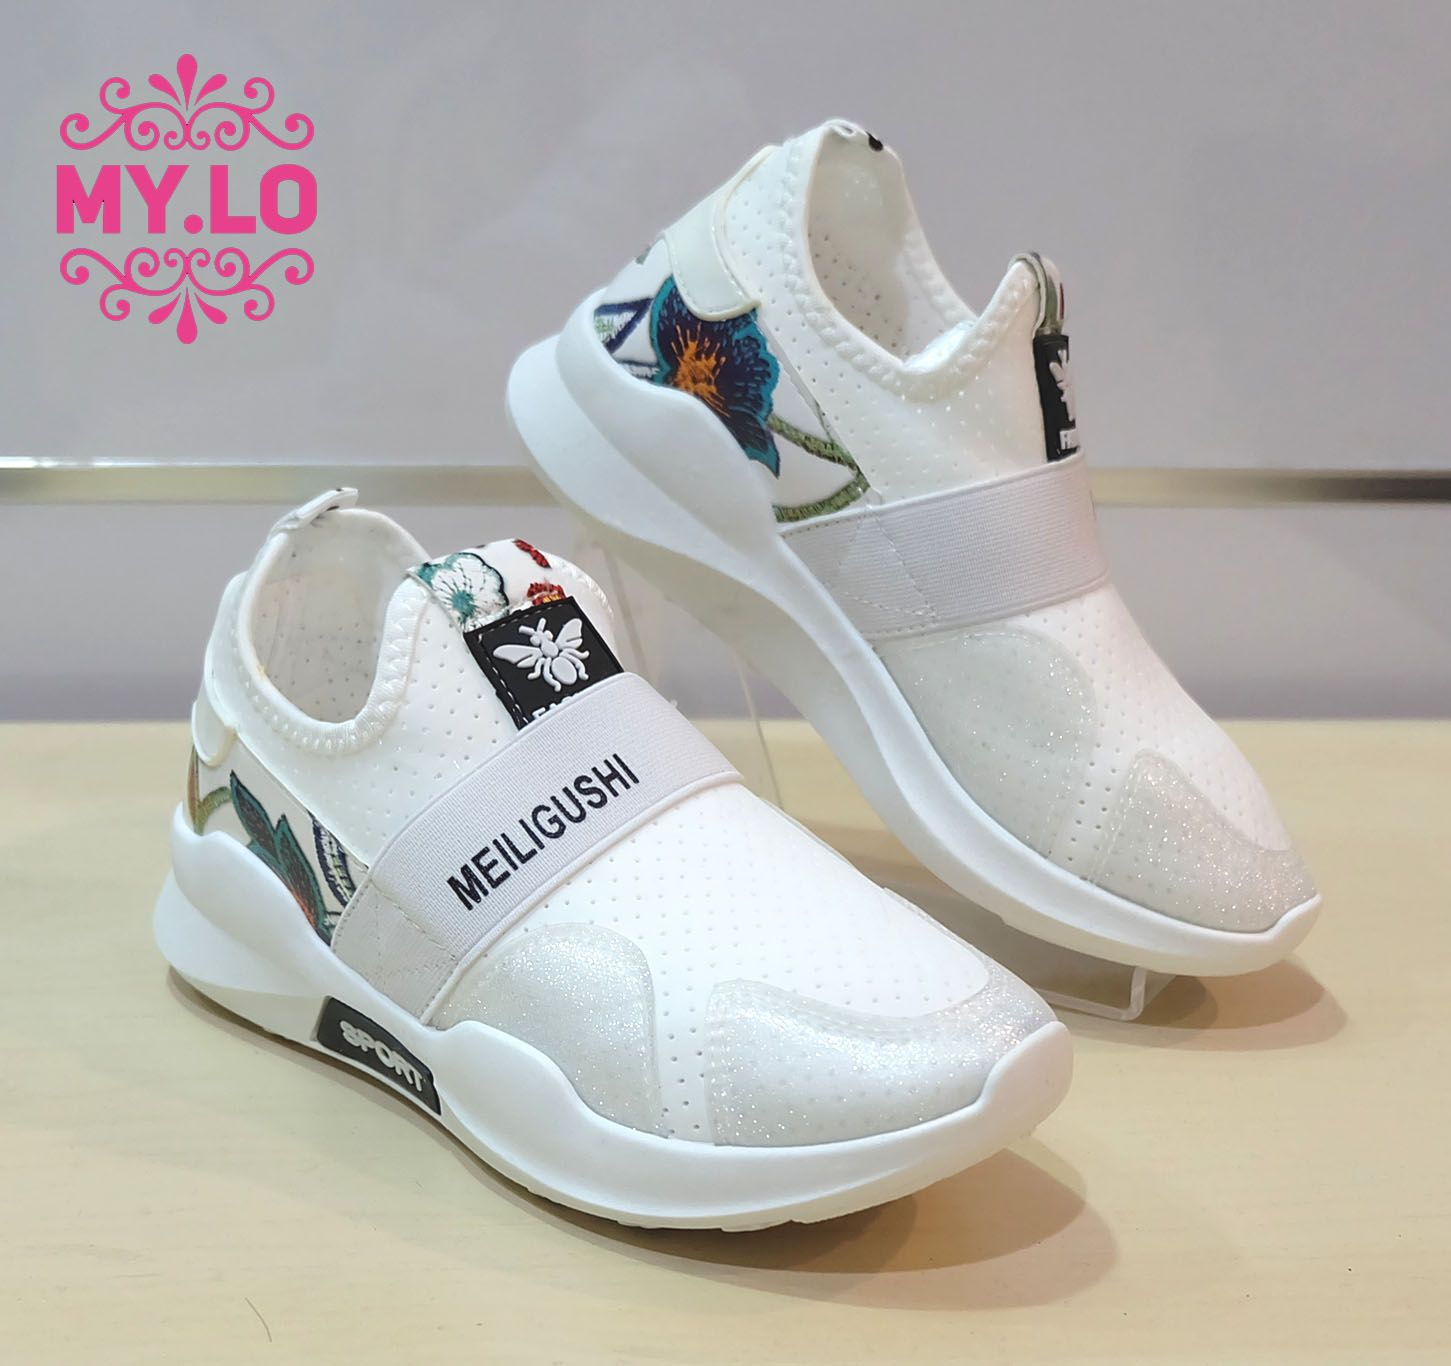 Kode Ms5a05 Warna White Size 35 40 Harga 220rb Foto Real Pic